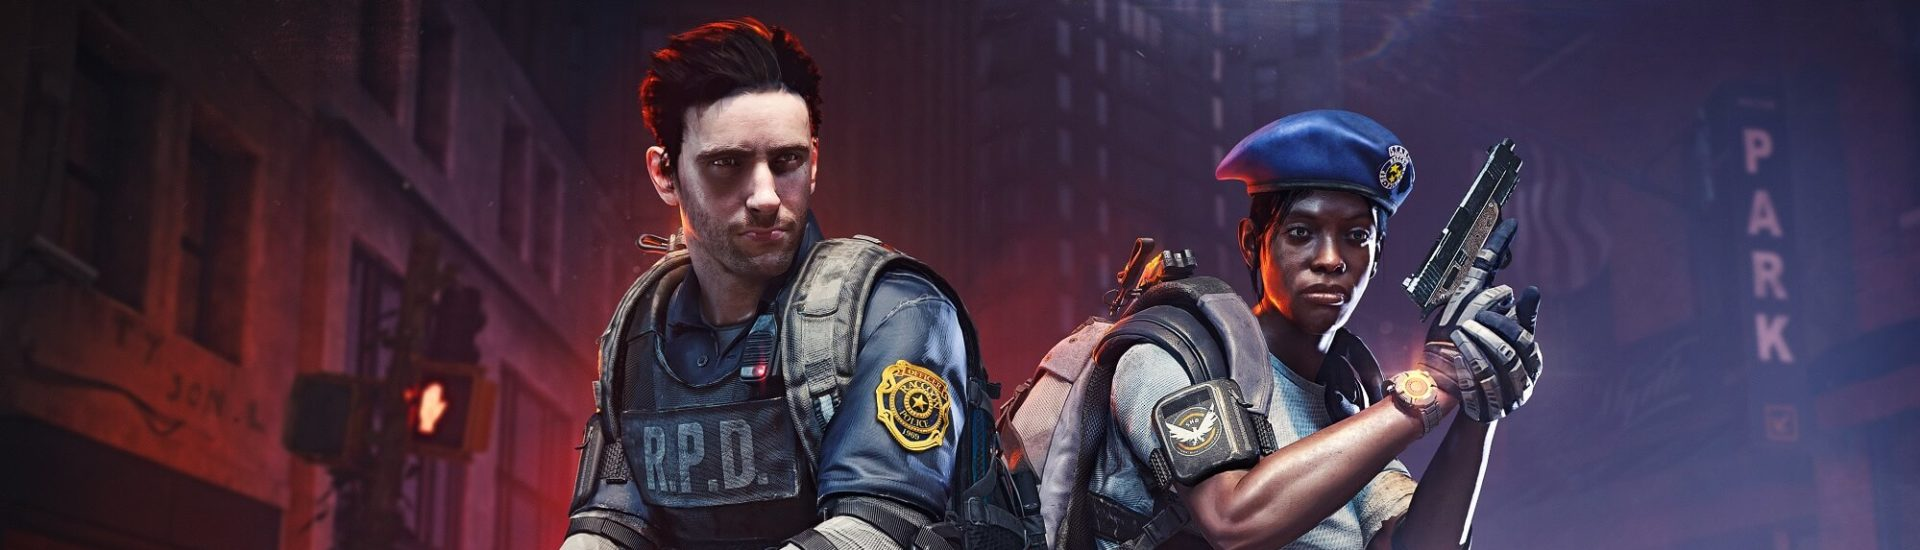 Resident Evil & The Division 2: Trailer stellt Crossover-Event vor